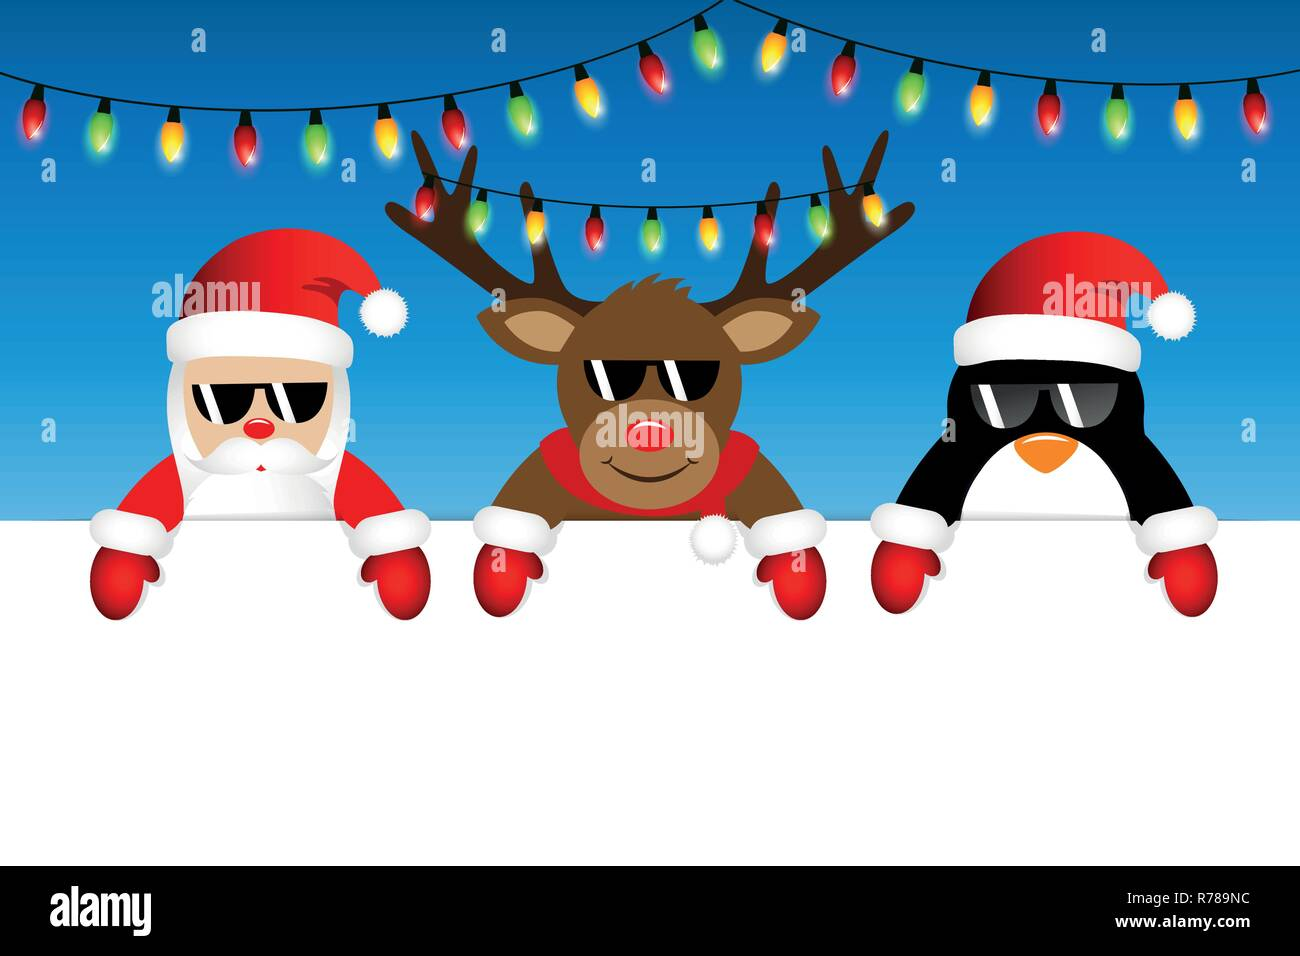 Christmas Fairy Lights Illustration.Cute Santa Reindeer And Penguin With Sunglasses And